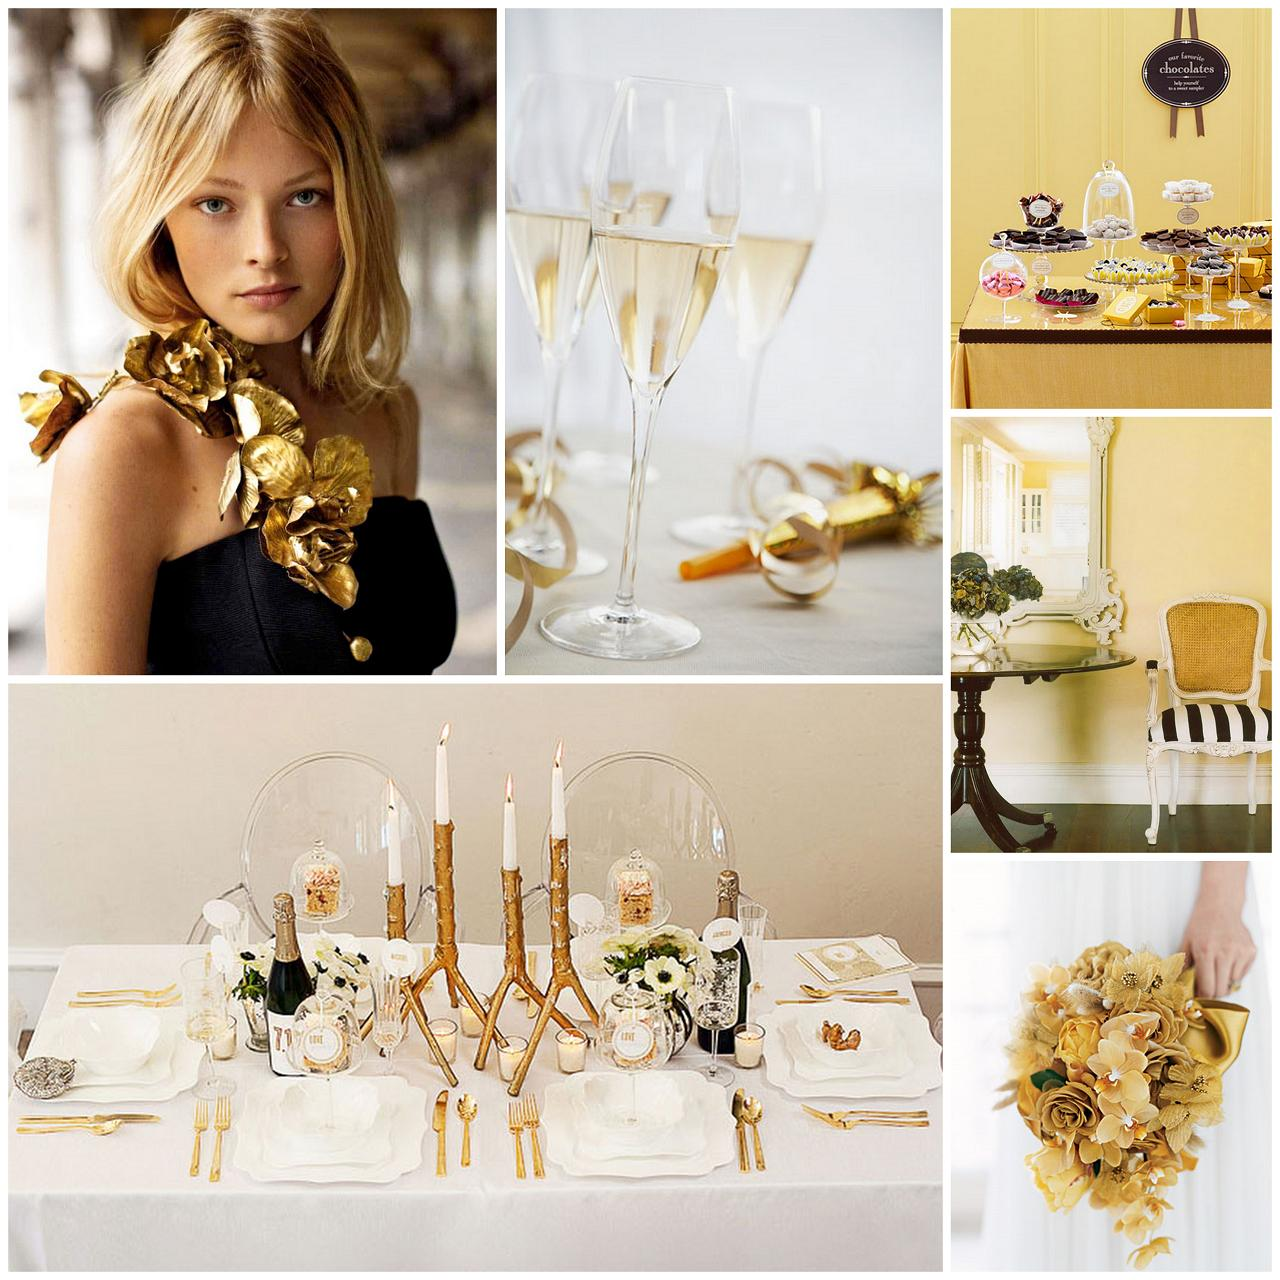 http://4.bp.blogspot.com/_jOvRBIo1b18/TRlZ_vSqRaI/AAAAAAAAEg0/IZNKEApJhxY/s1600/new+years+eve+_+champagne_gold+_+black_+wedding+inspiration.jpg